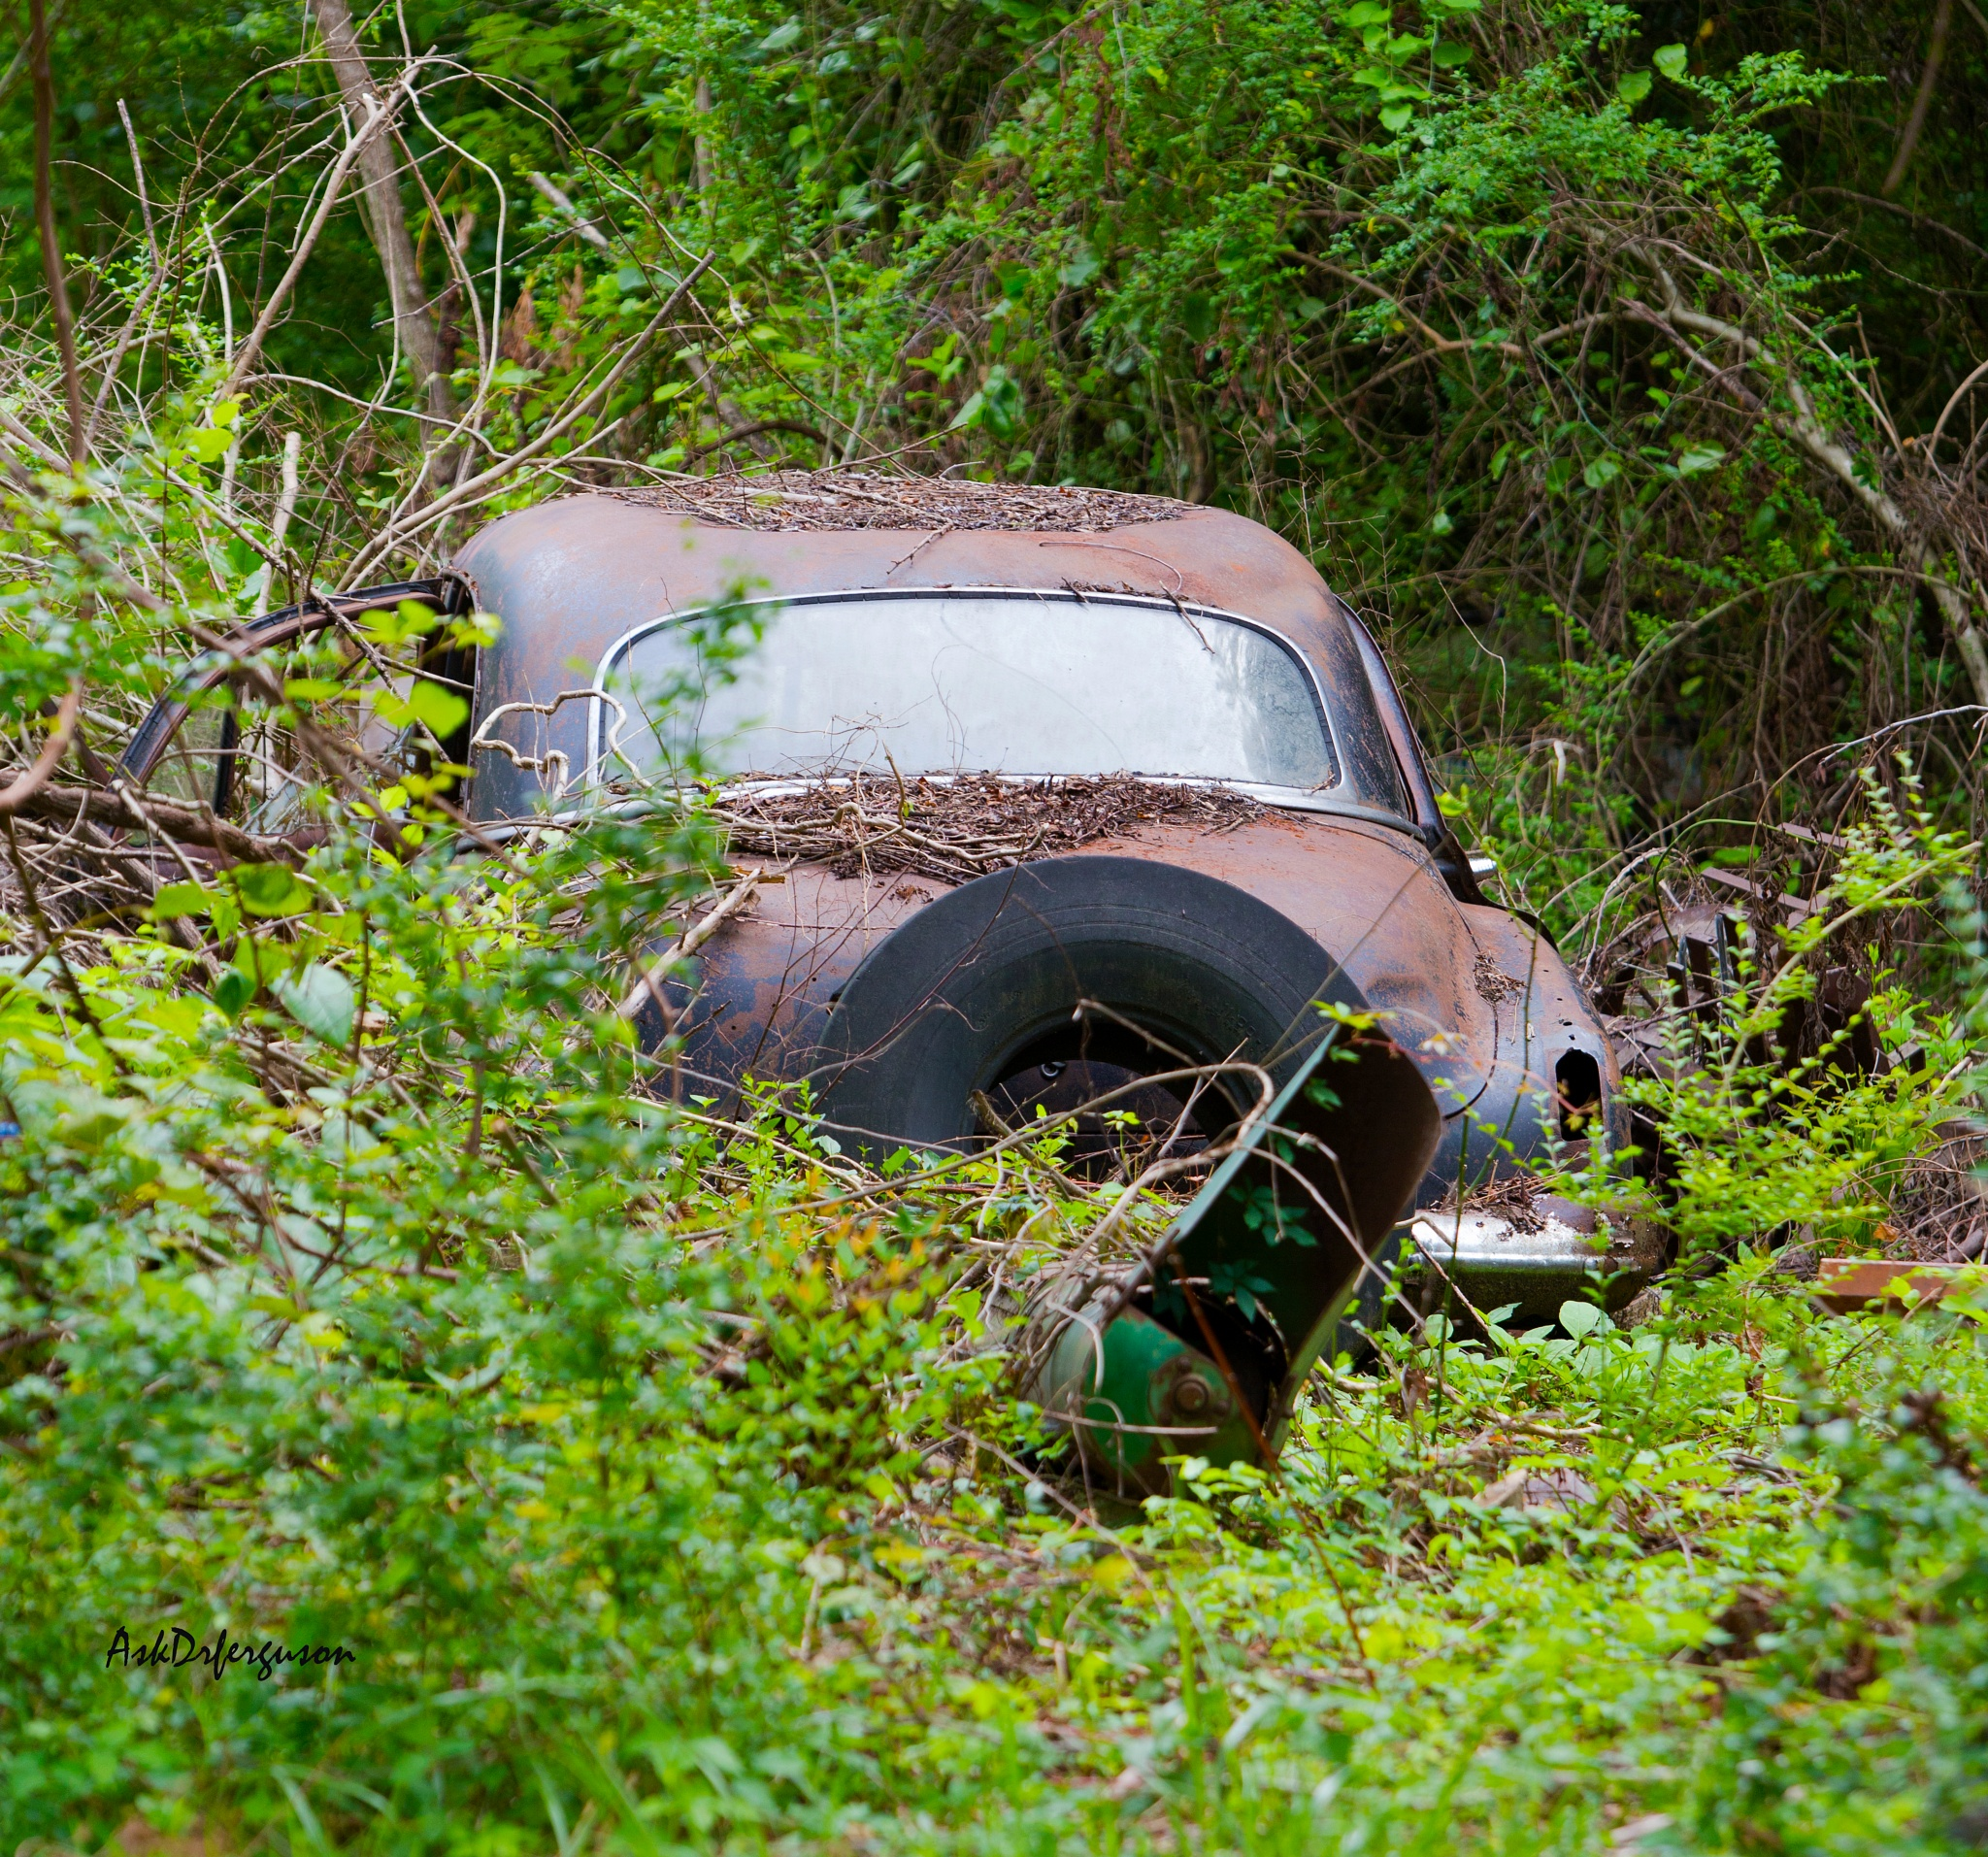 Old Car by askdrferguson